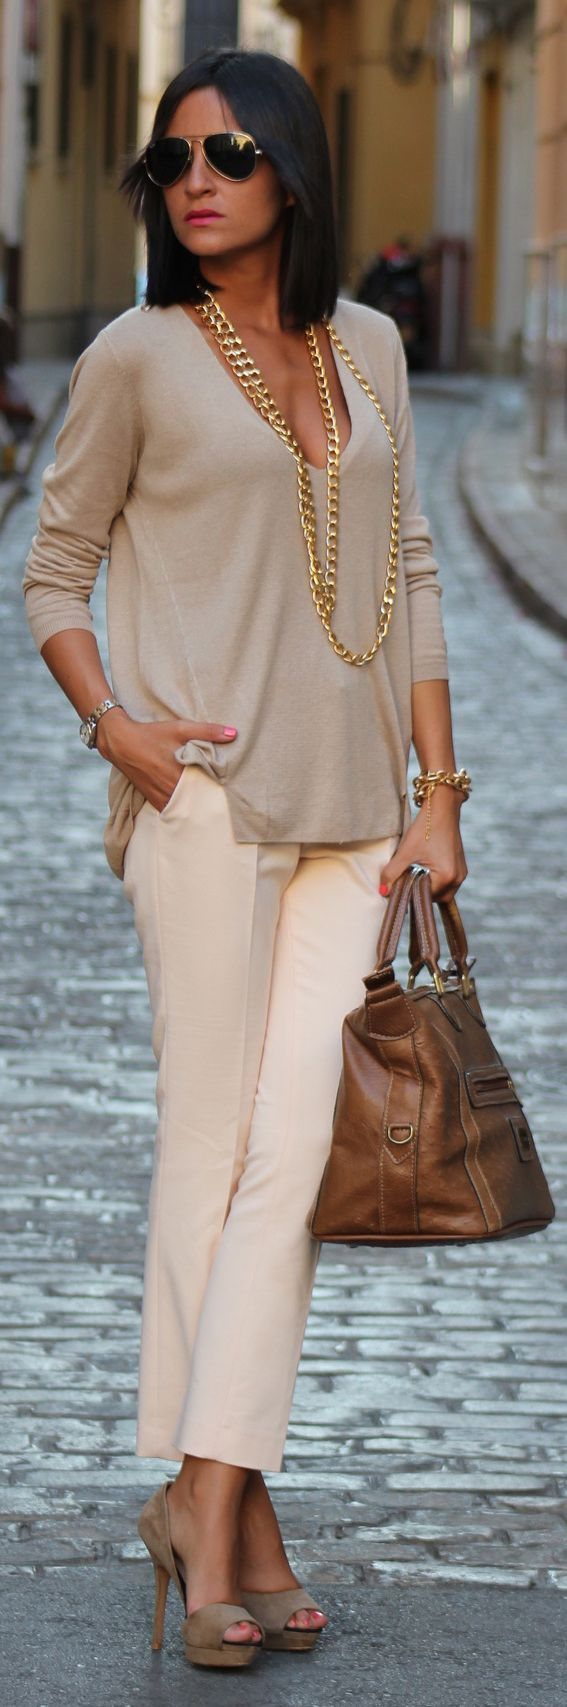 gorgeous. crisp neutrals...